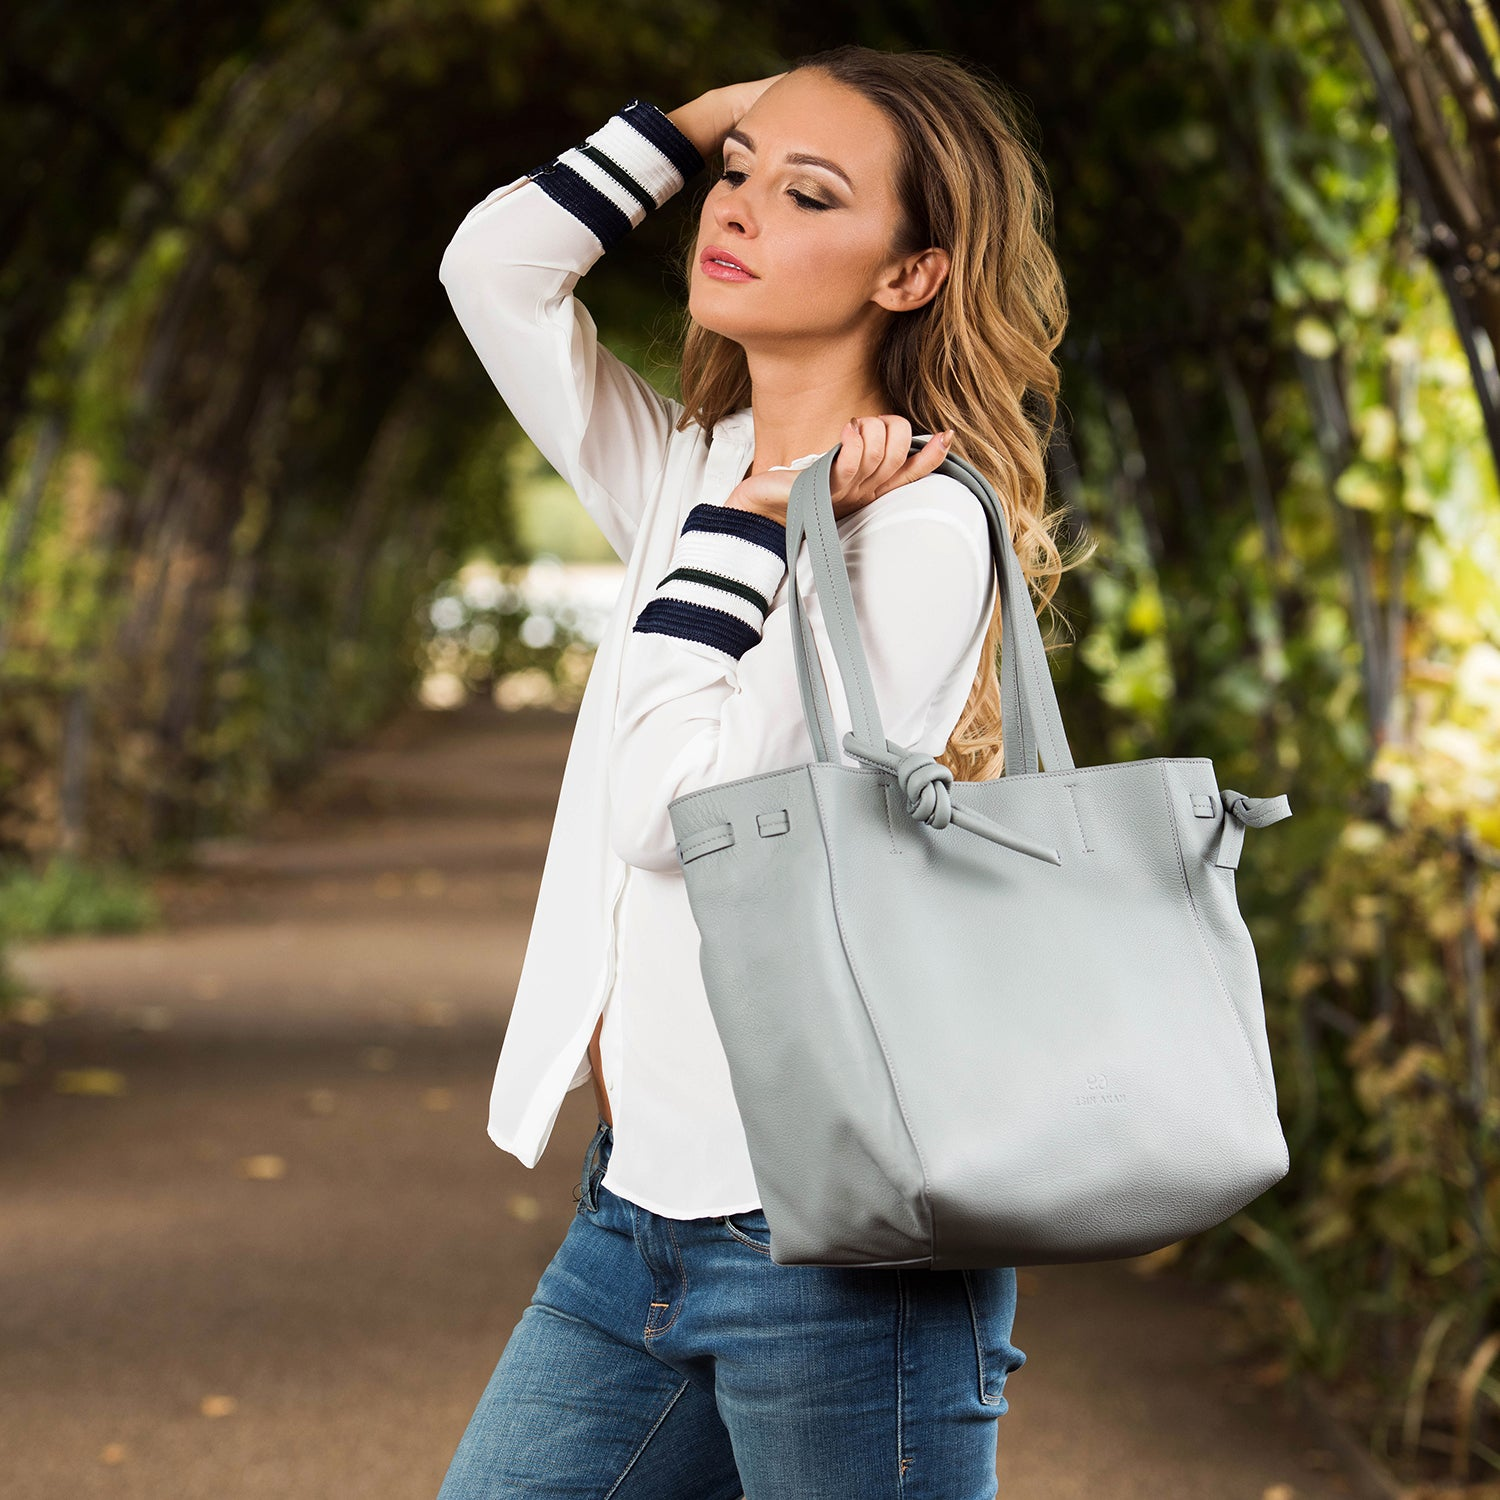 A model wearing leather black tote bag for women as a travel bag.